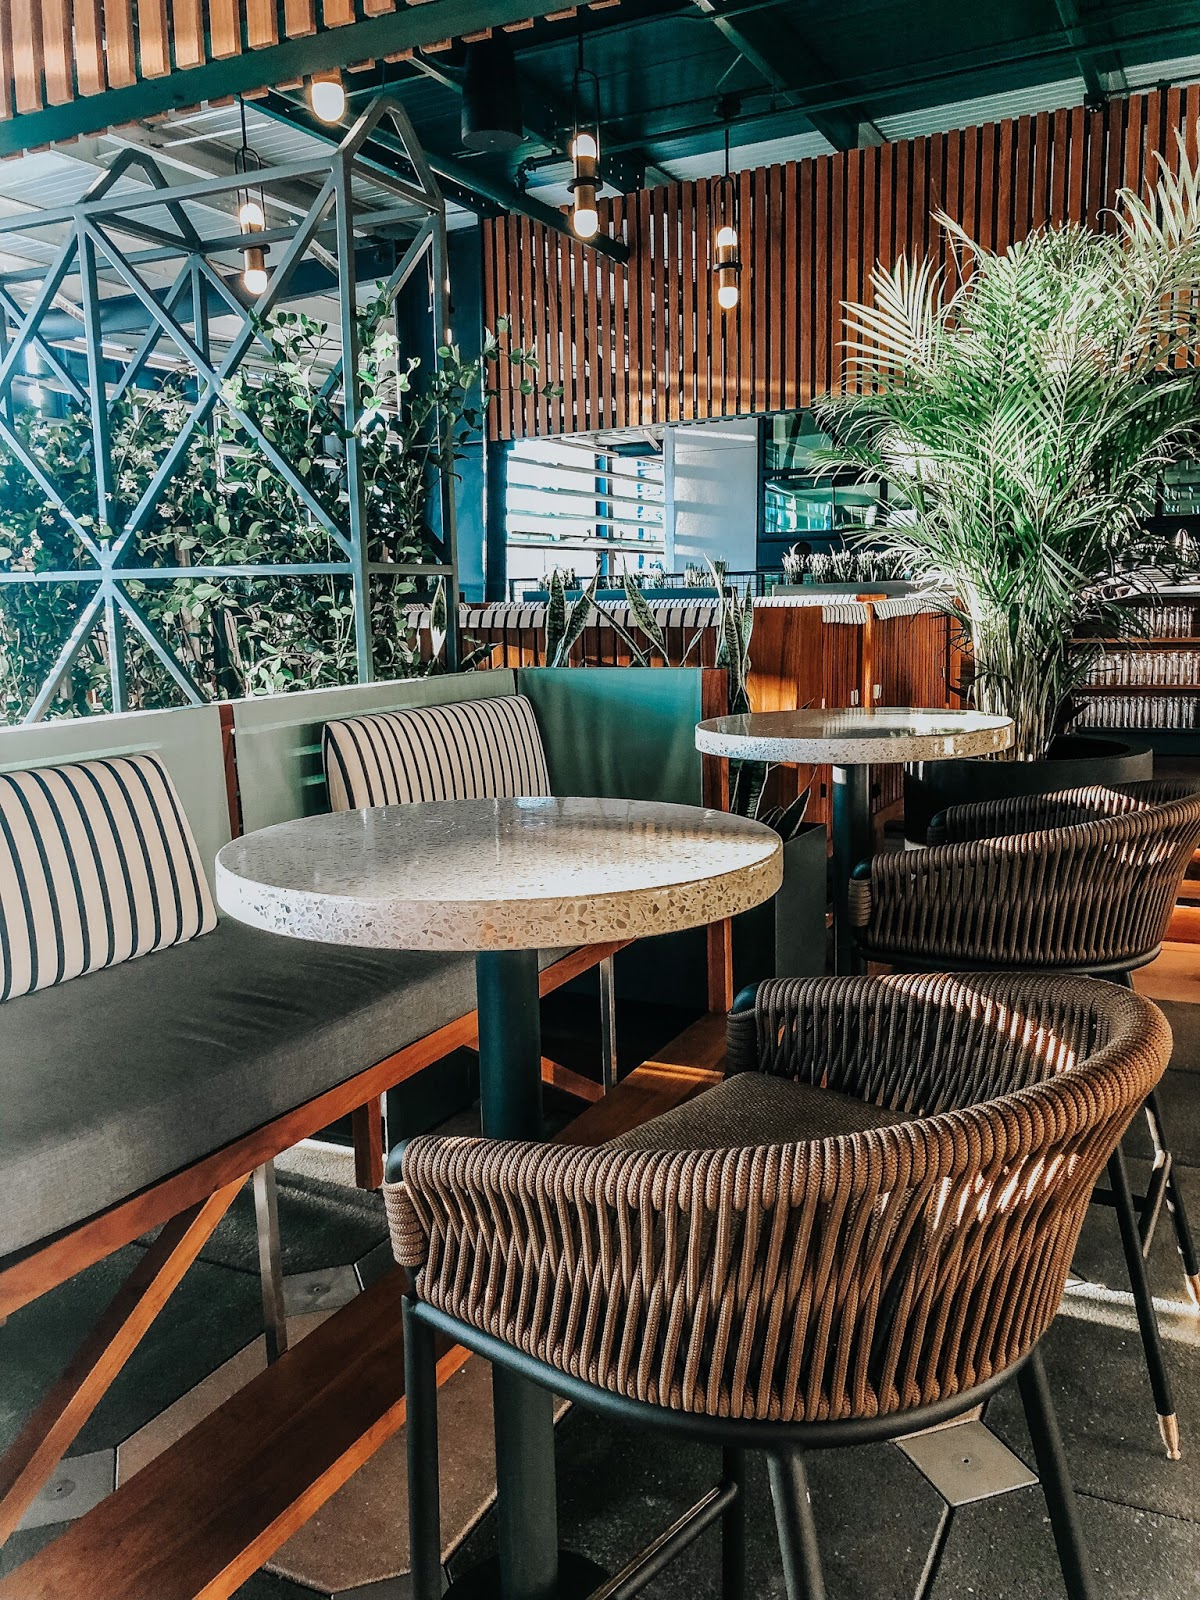 A view inside of M.Bird, the new rooftop bar on top of Armature Works in Tampa, Florida